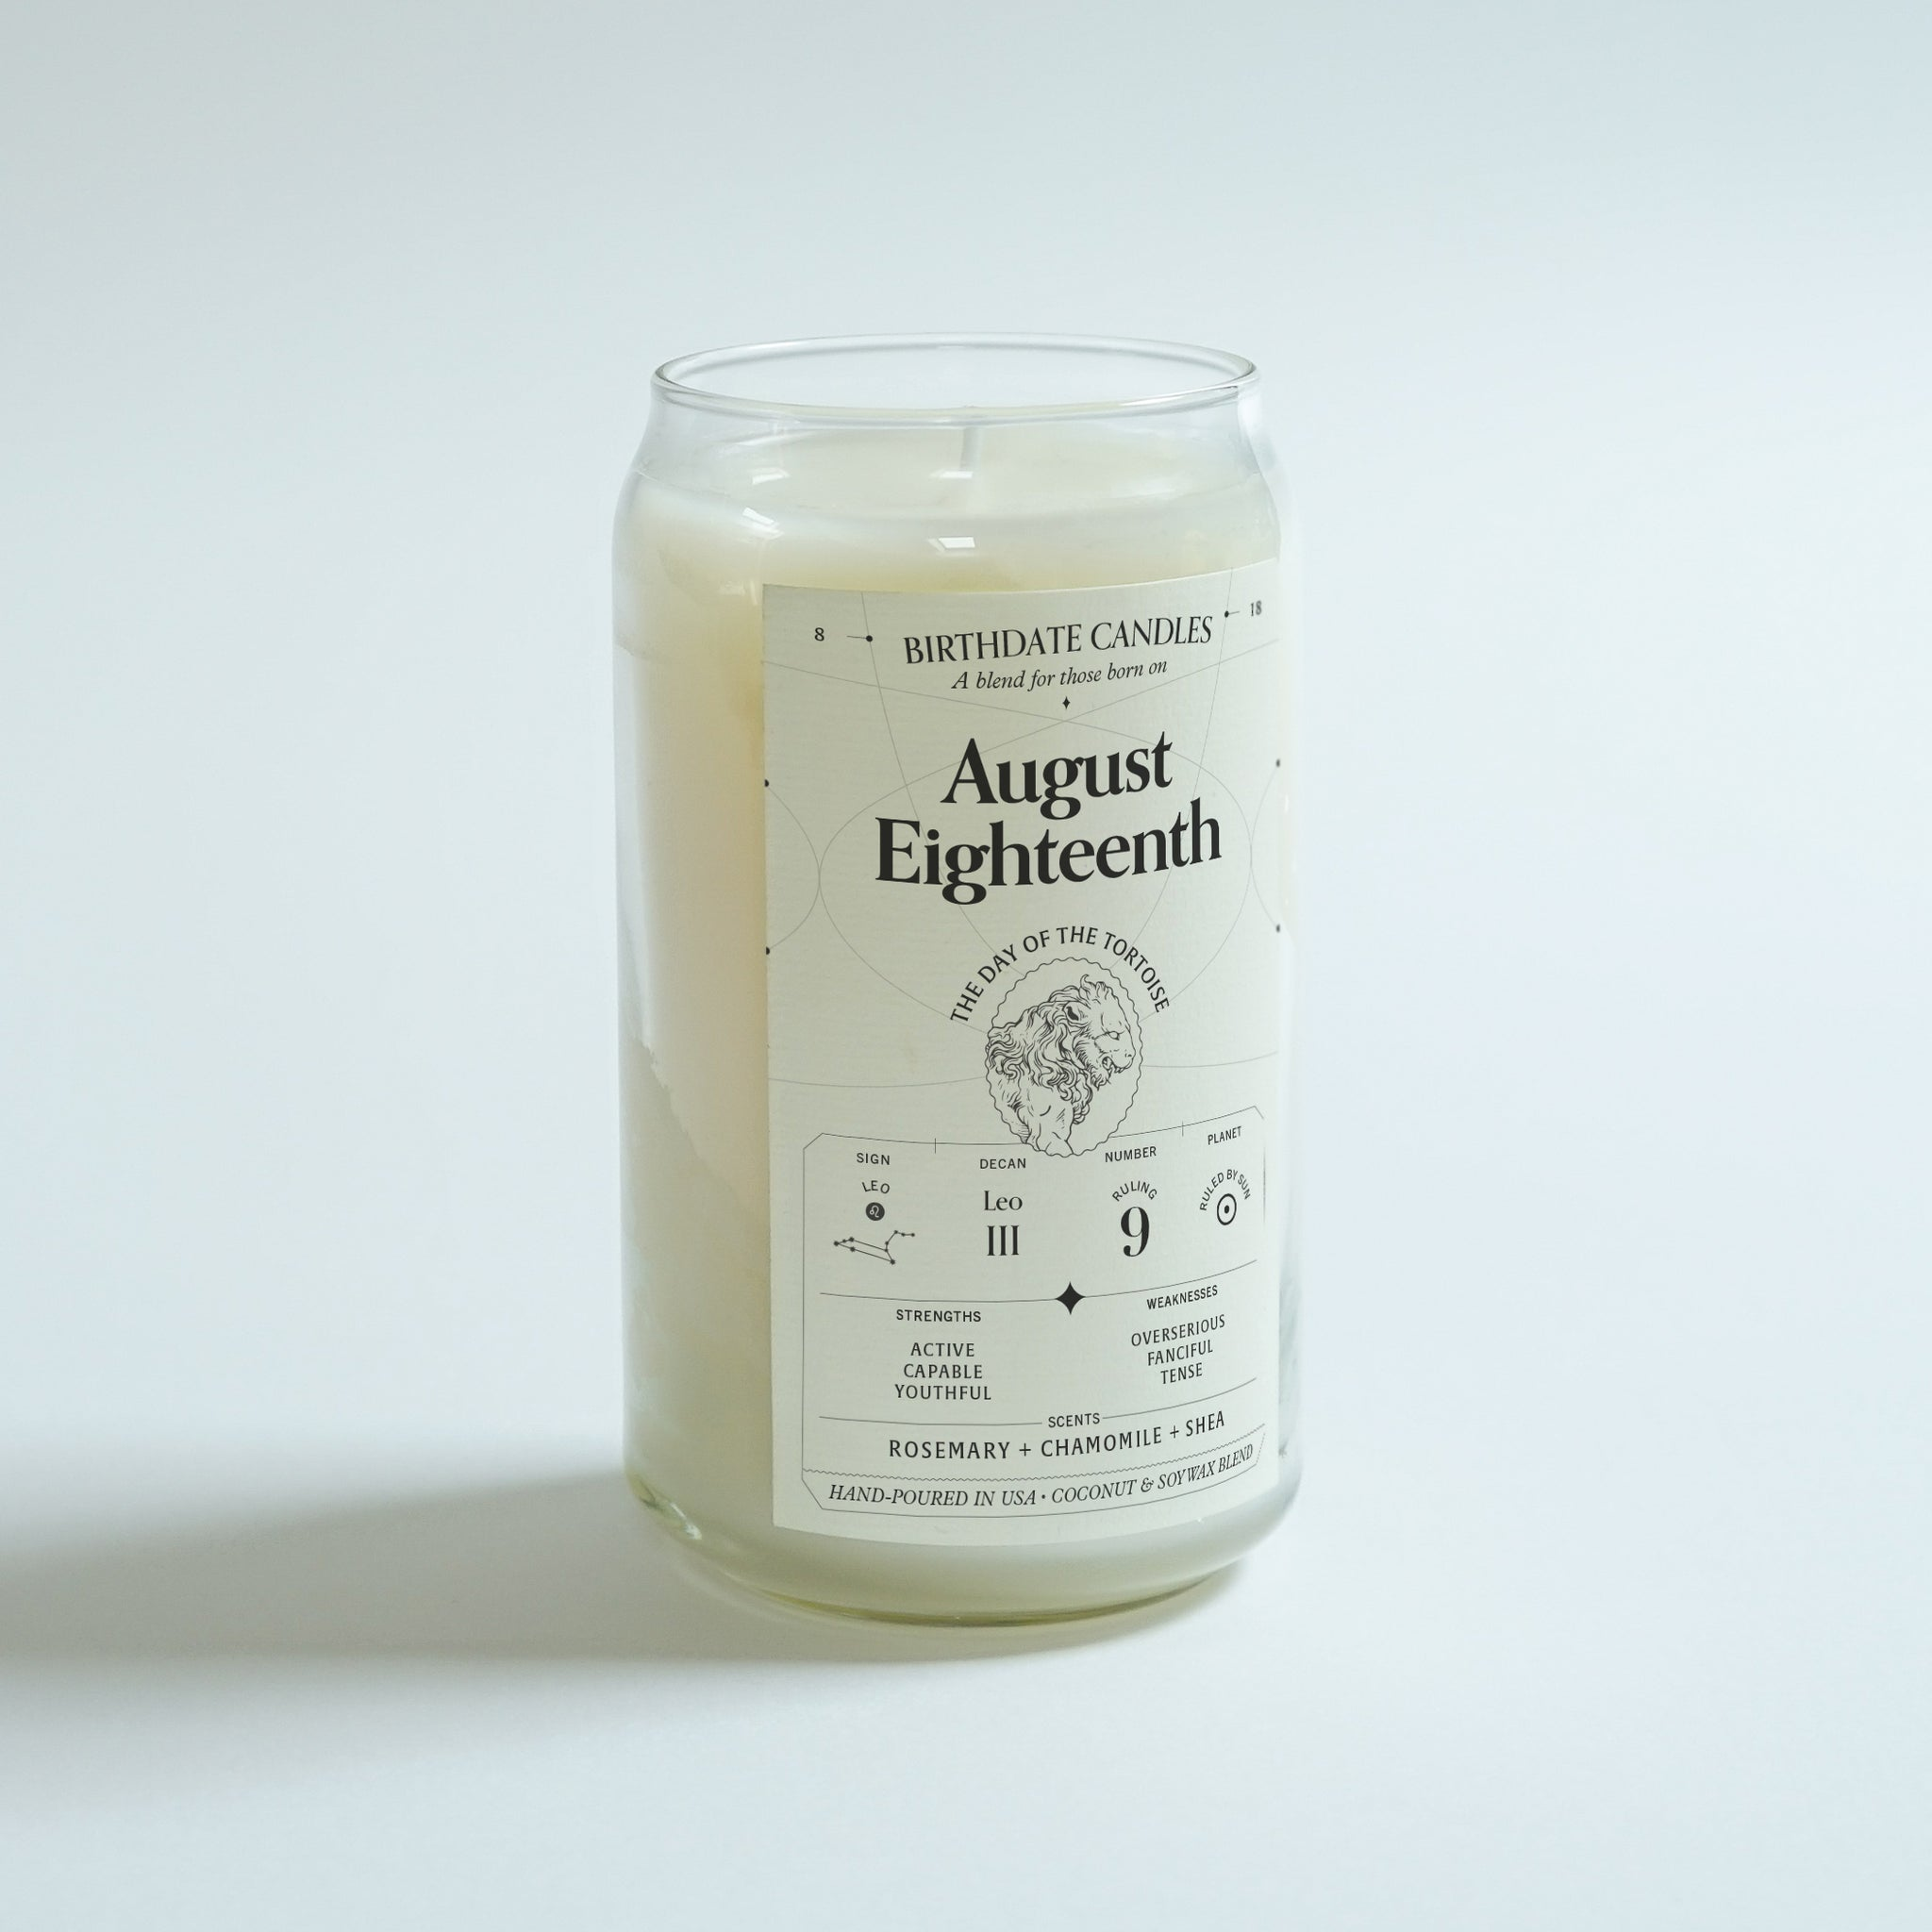 The August Eighteenth Birthday Candle